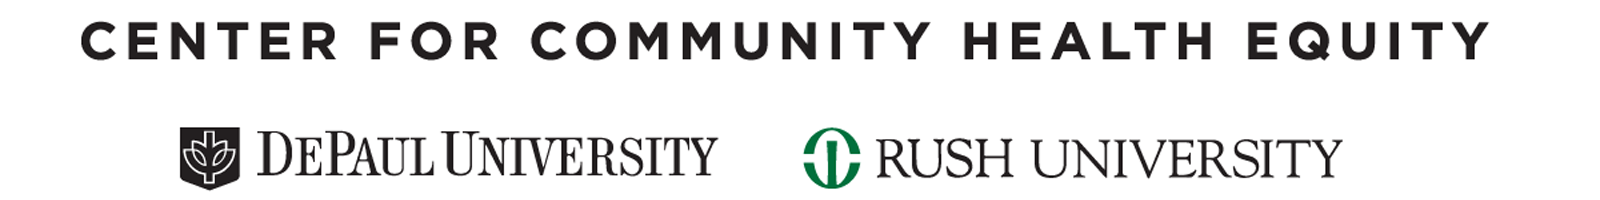 Center For Community Health Equity Centers Institutes